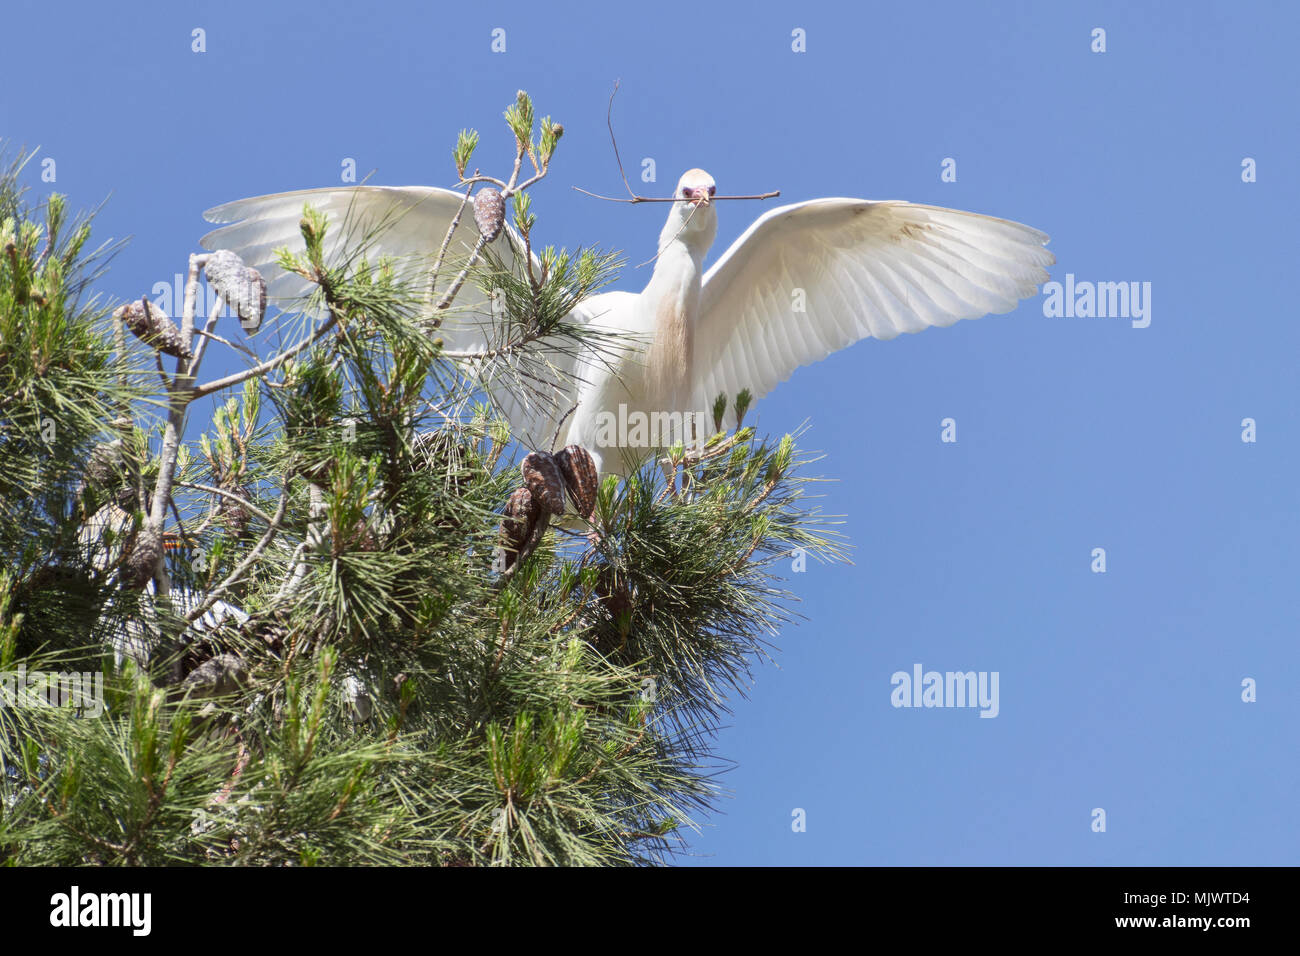 cattle egret carrying nesting material back to the nursery tree - Stock Image